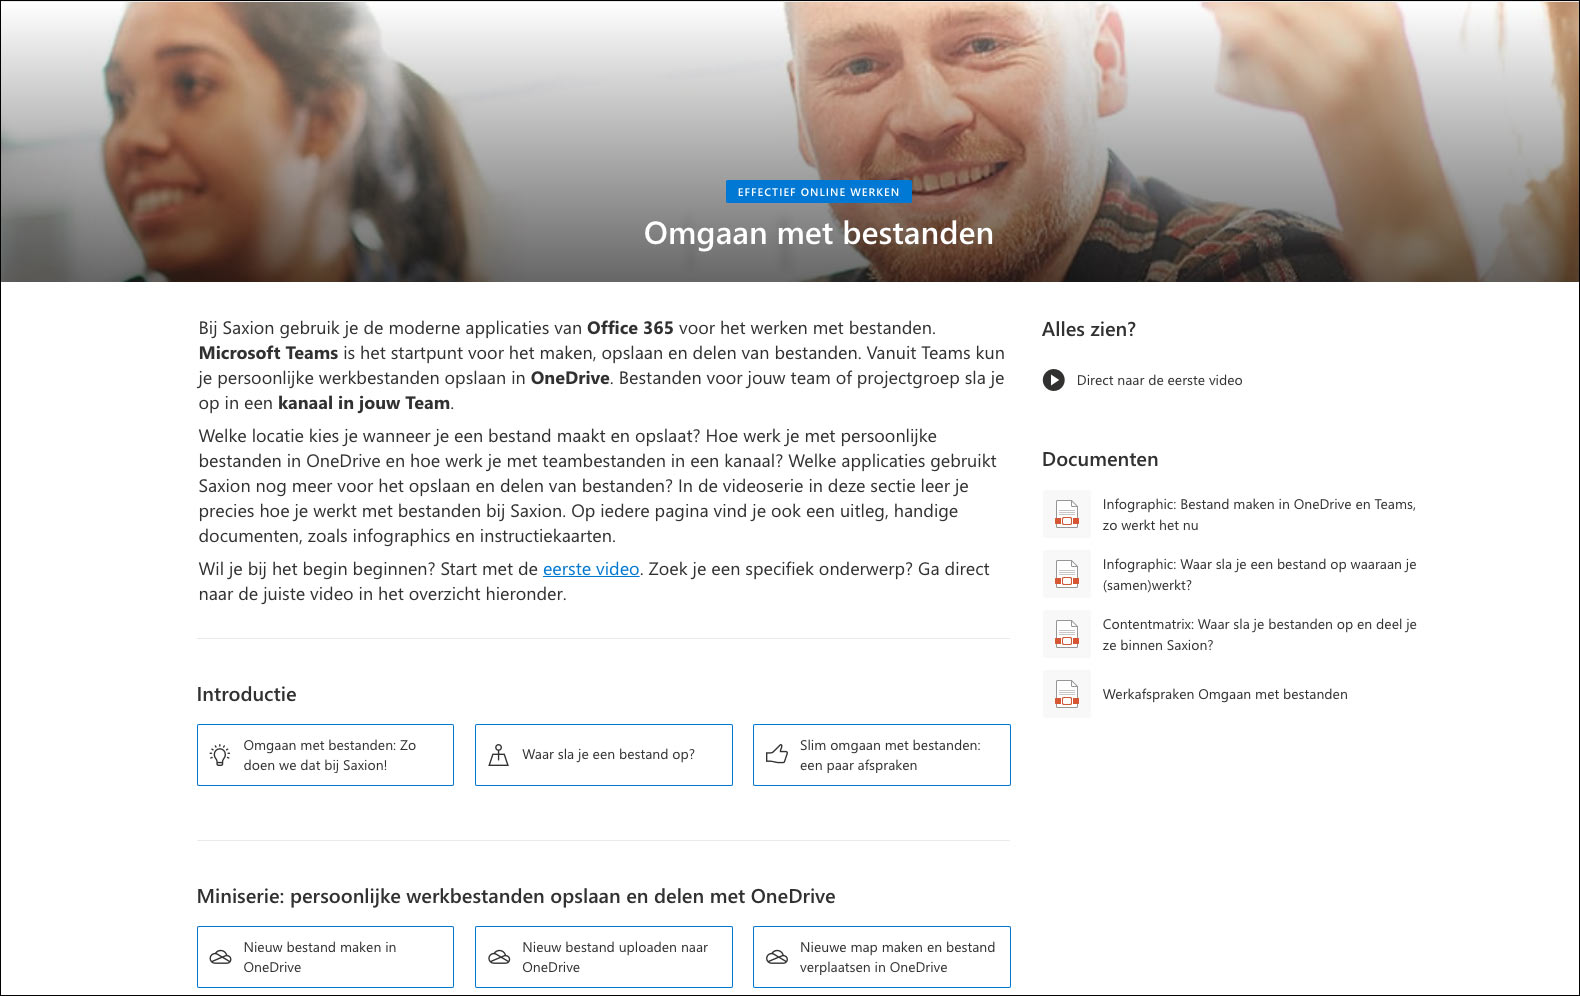 Omgaan met bestanden - SharePoint Communication Site